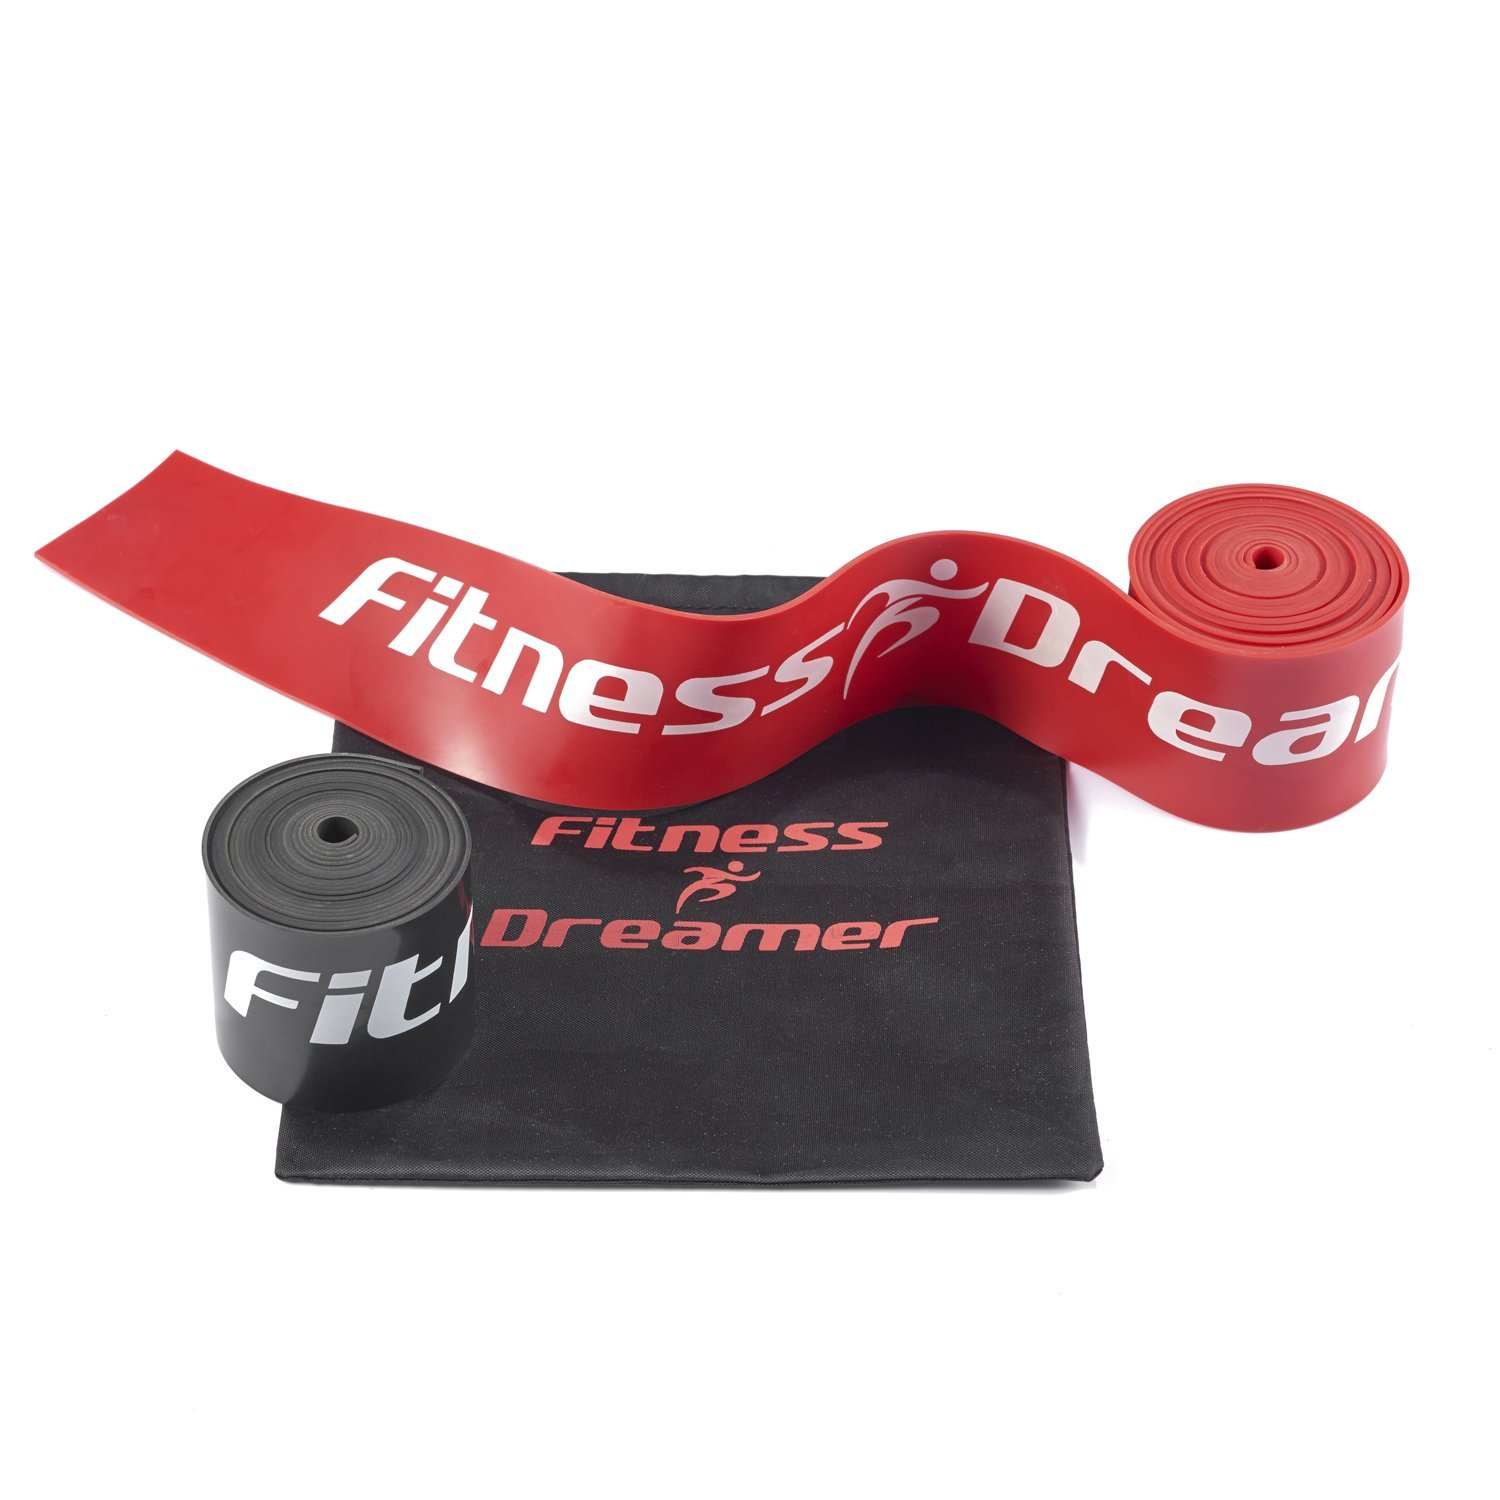 Exercise & Fitness Stretch Band Includes Carrying Case WOD Nation